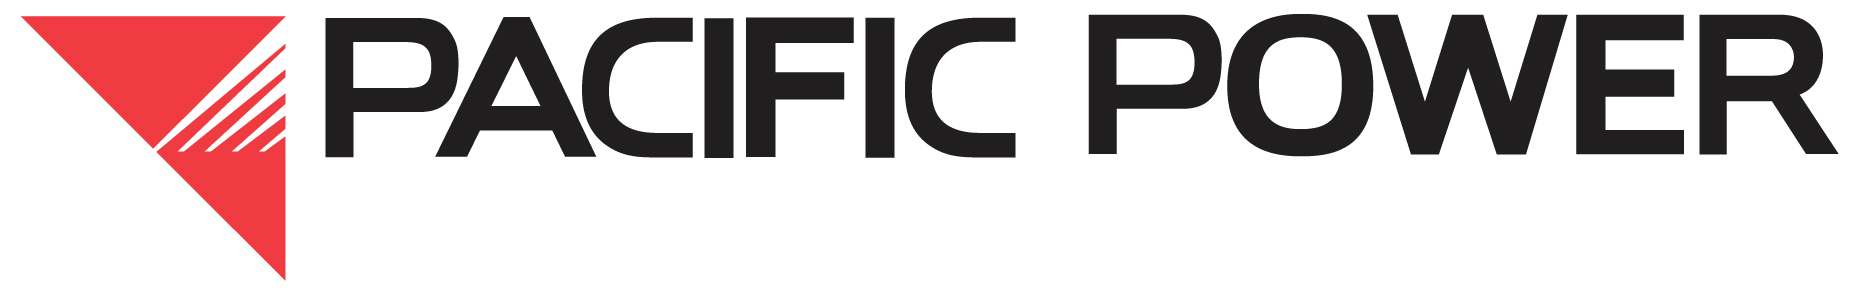 Luncheon Event Sponsor Pacific Power